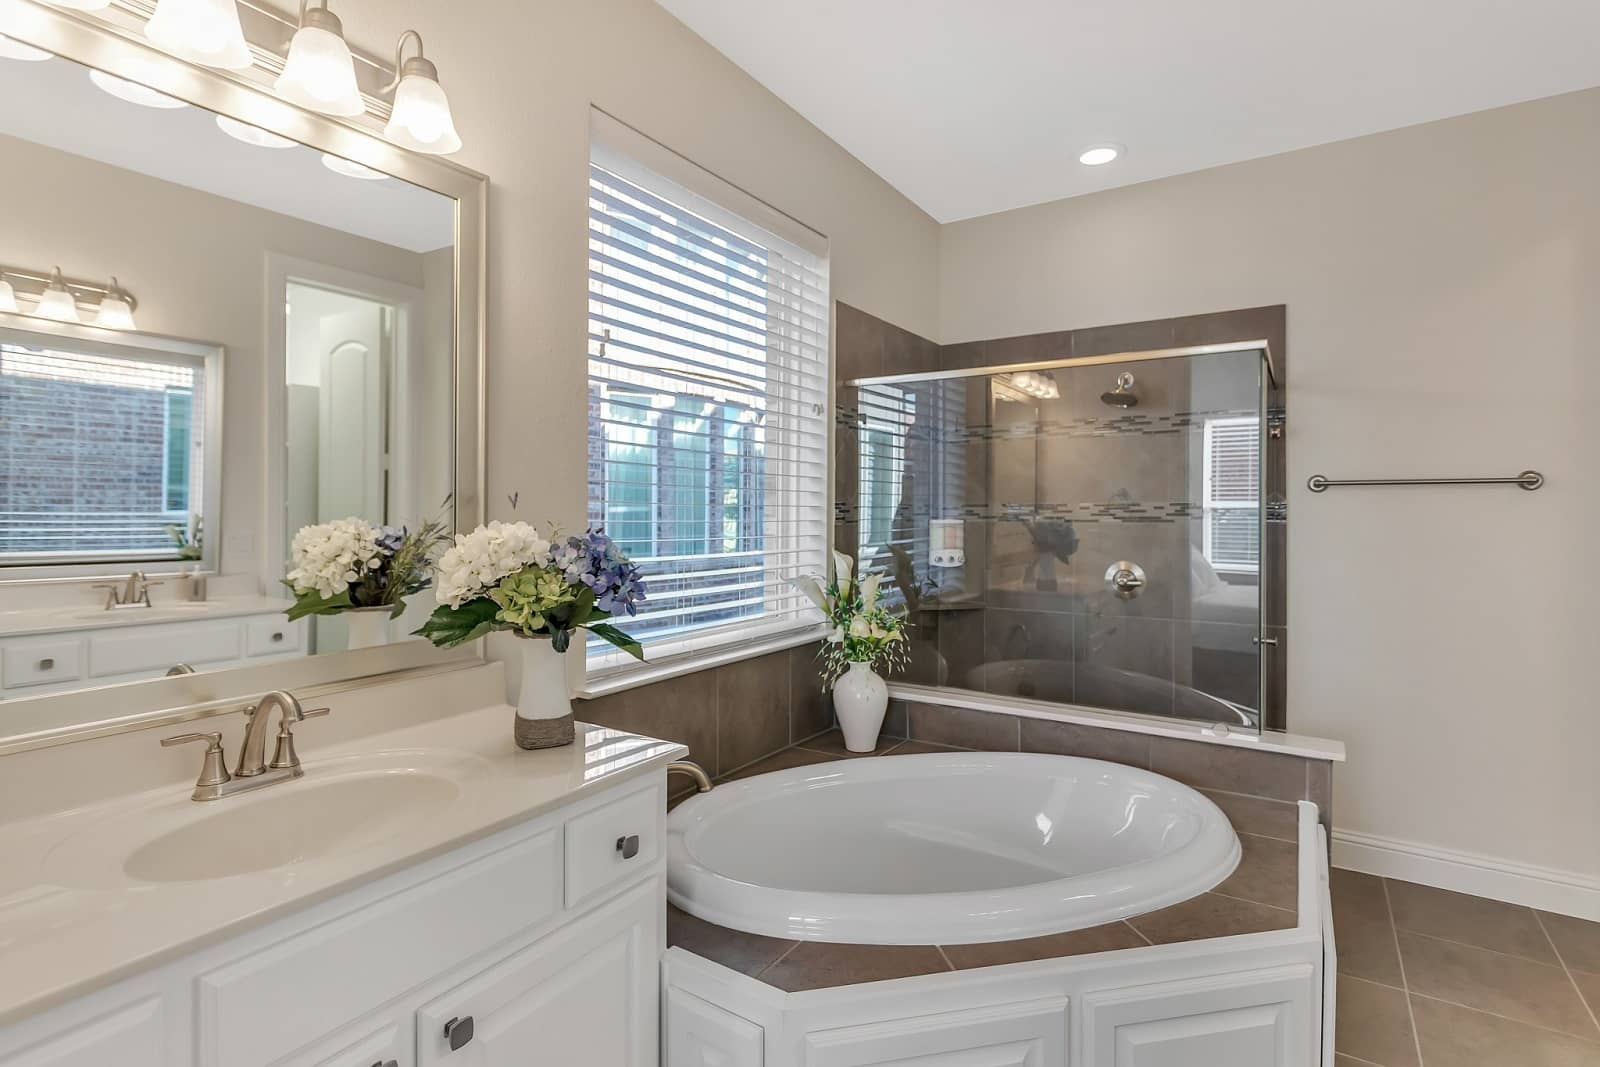 Real Estate Photography in Irving - TX - Bath View